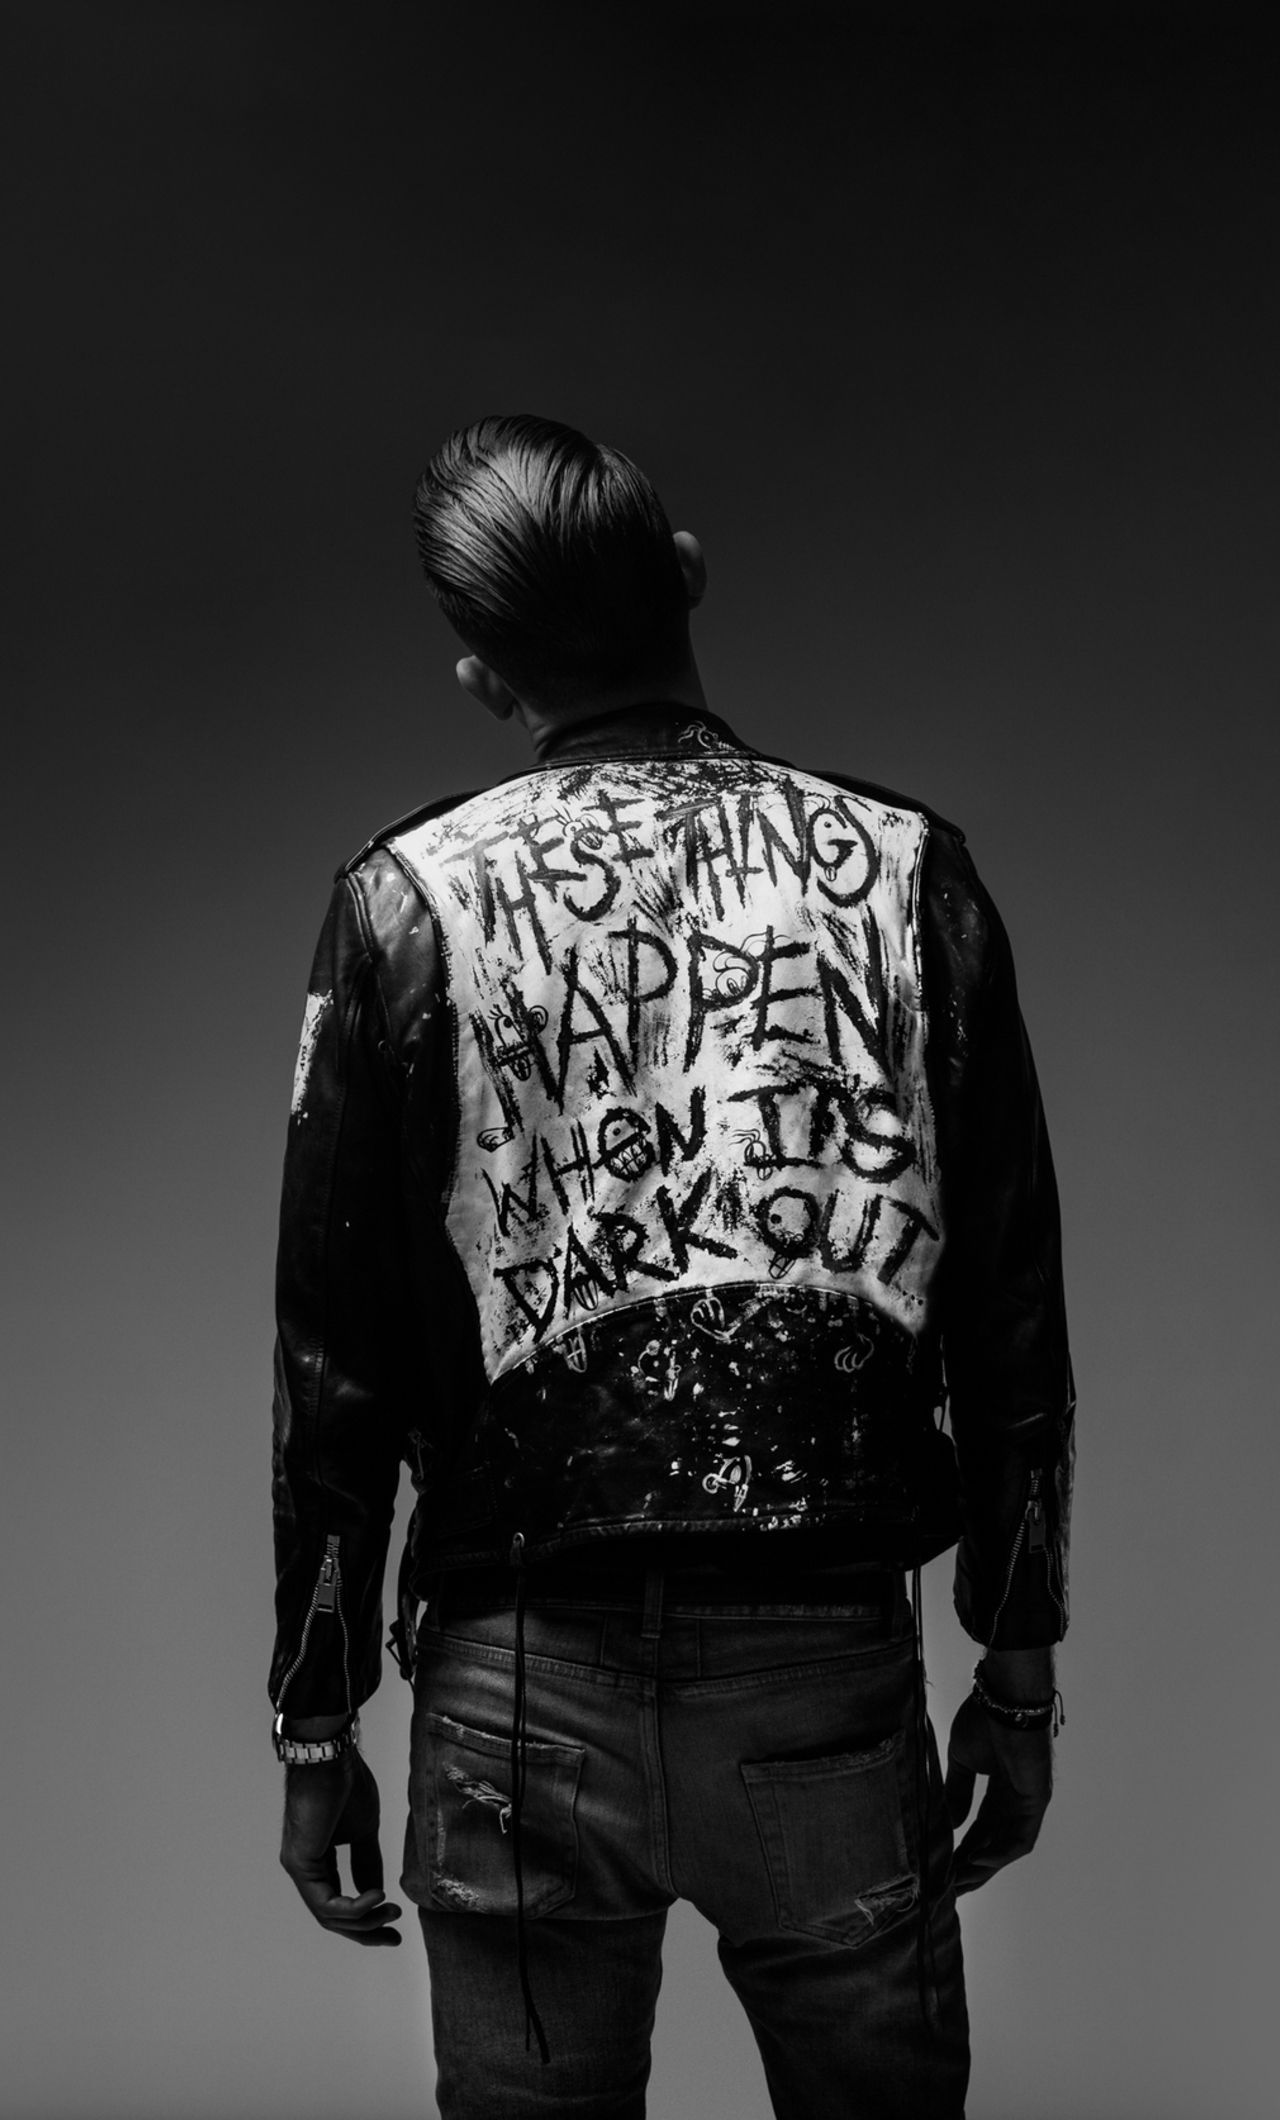 G Eazy Iphone Wallpapers Top Free G Eazy Iphone Backgrounds Wallpaperaccess G Eazy Style G Eazy G Eazy Iphone Wallpaper